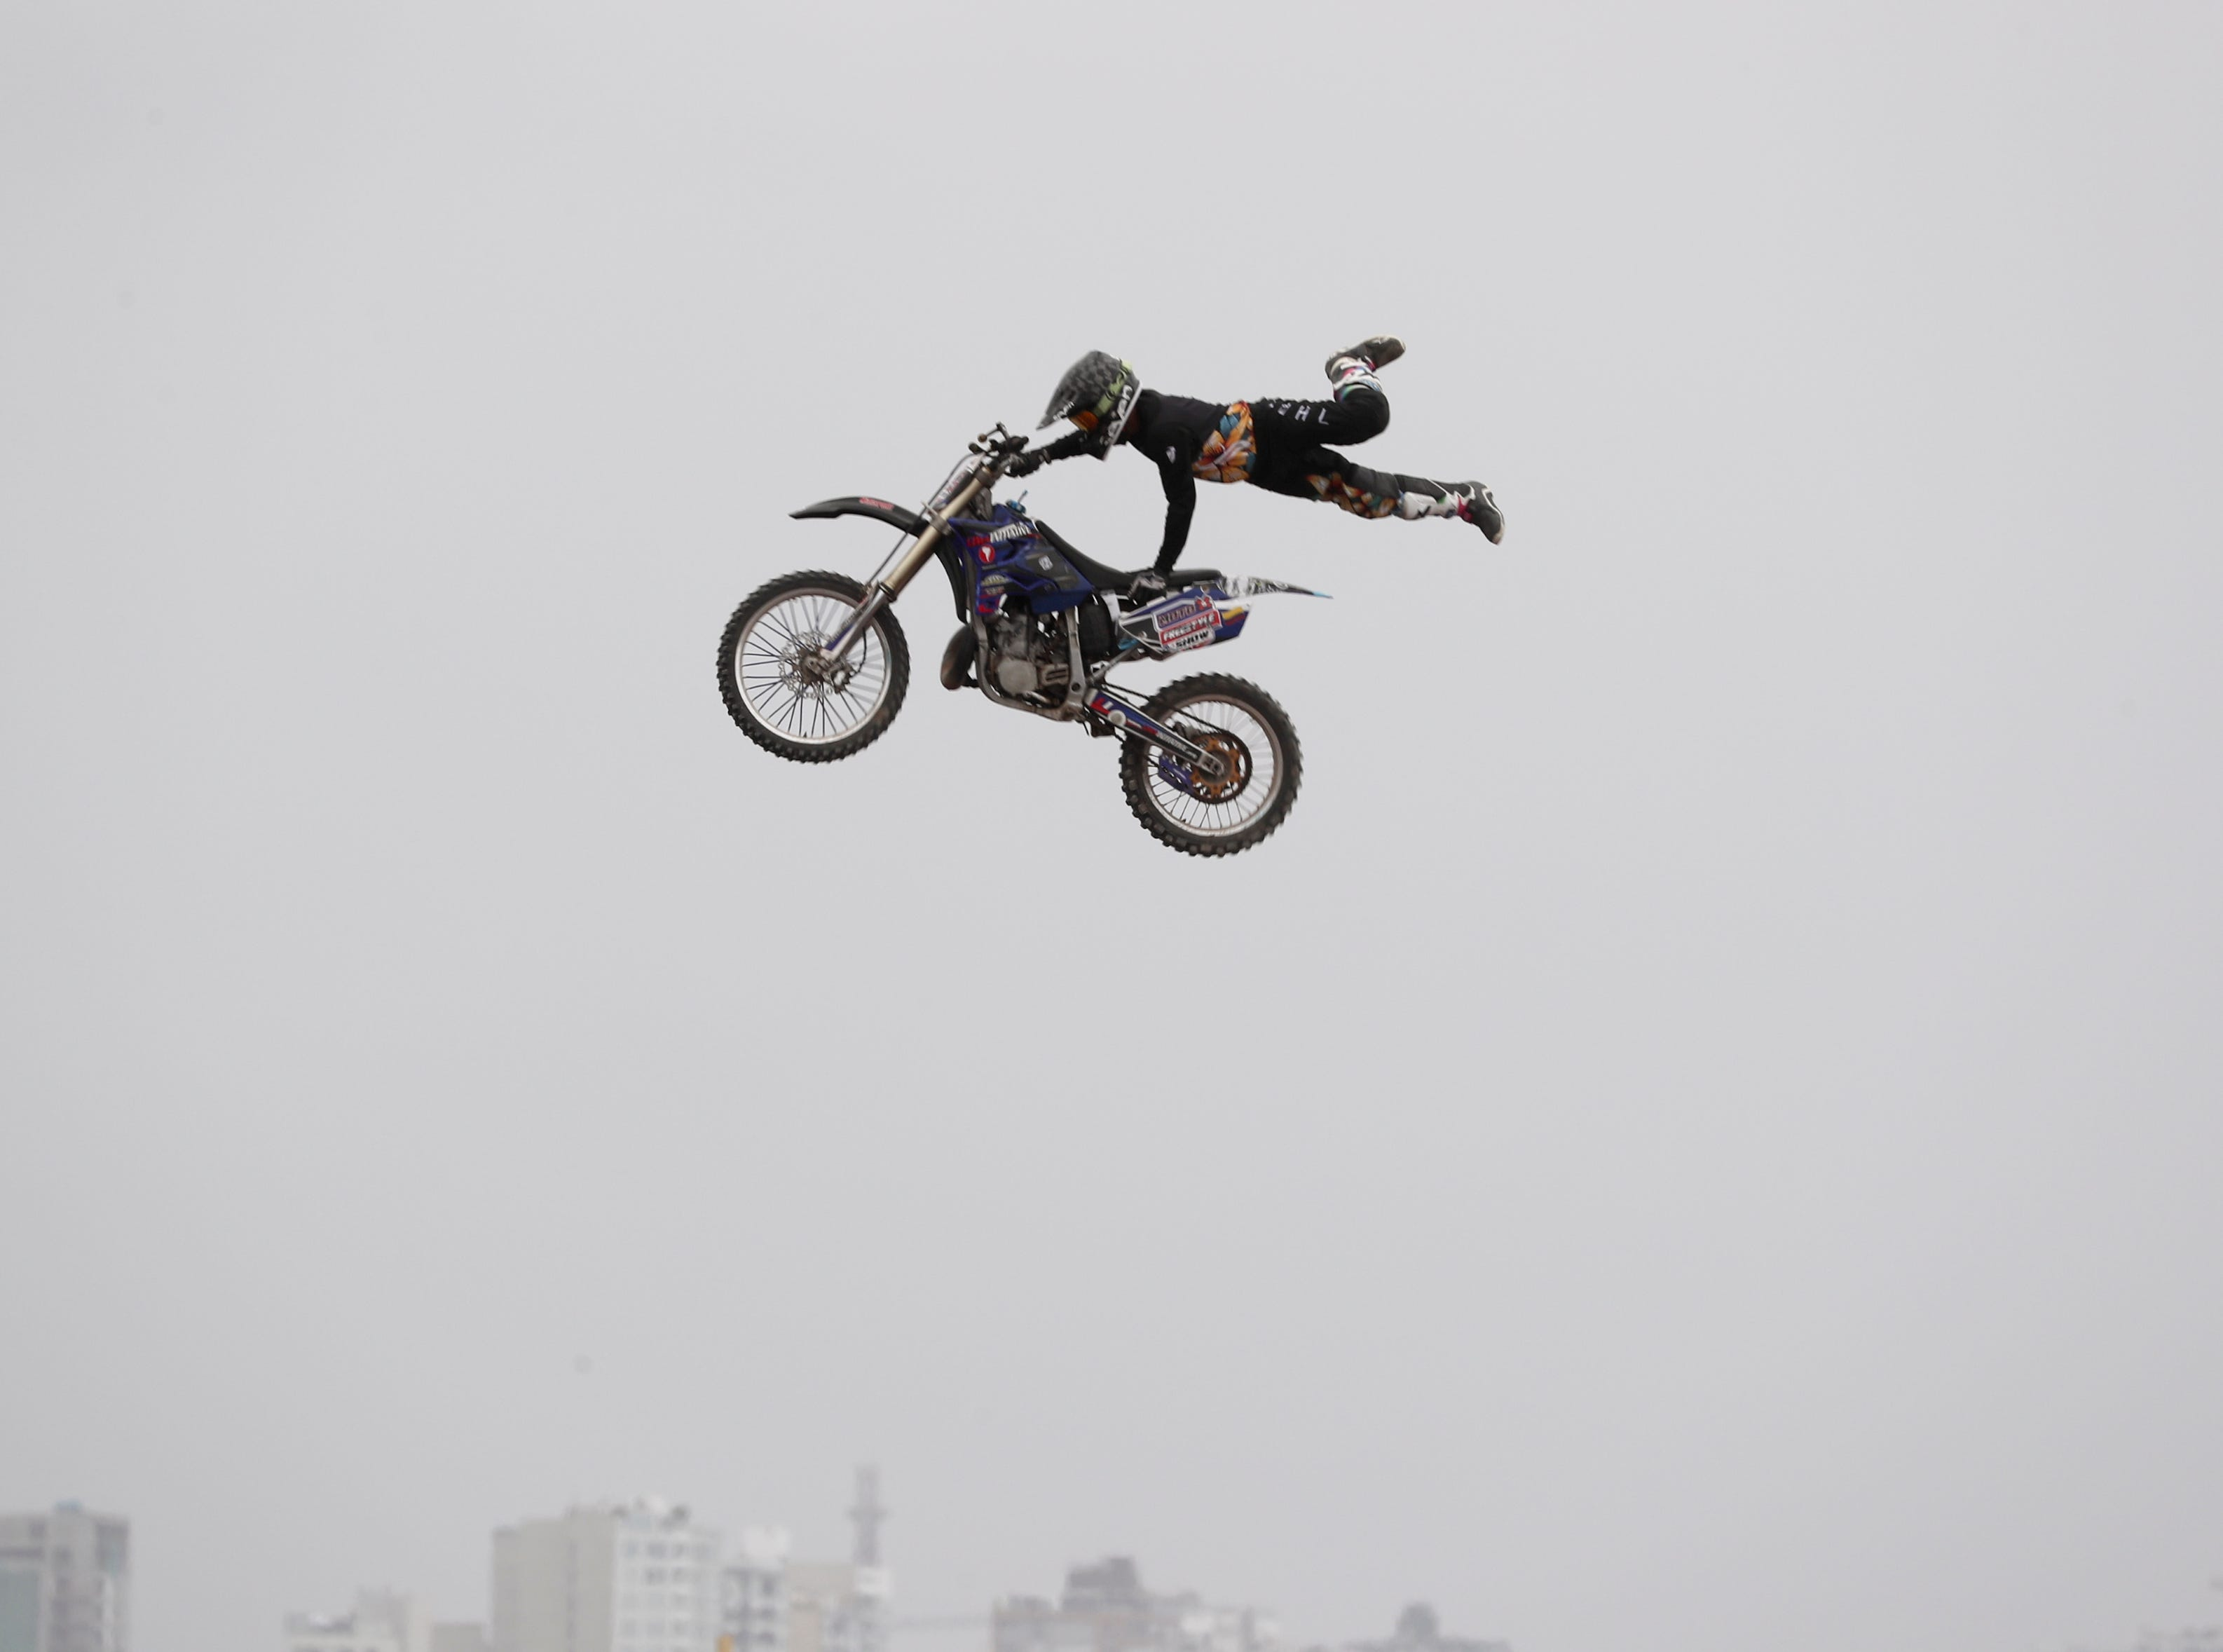 A rider performs before the start of the Dakar Rally in Lima, Peru, Sunday, Jan. 6, 2019. The 41st edition of Dakar Rally starts in Lima on Jan. 7.